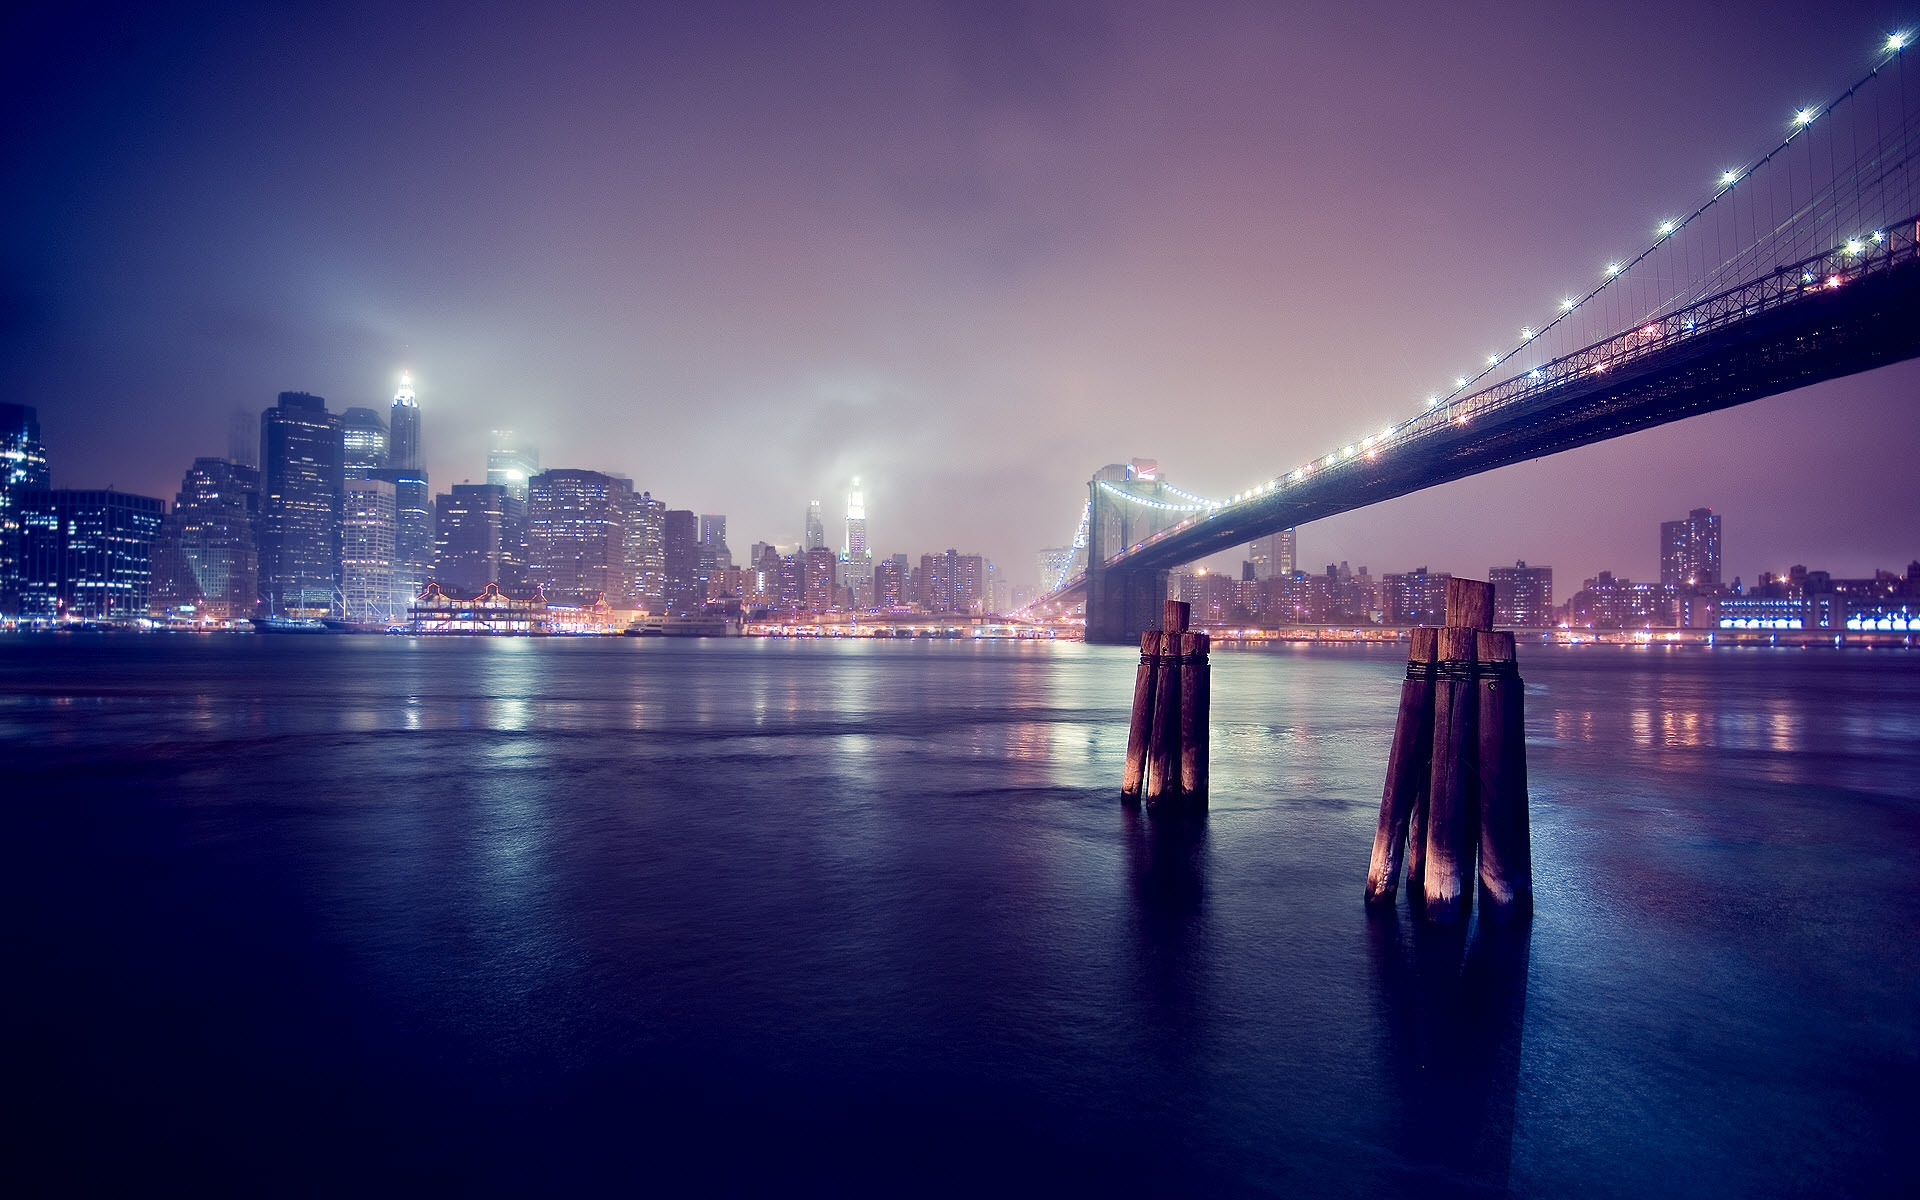 Brooklyn Bridge City Wallpaper